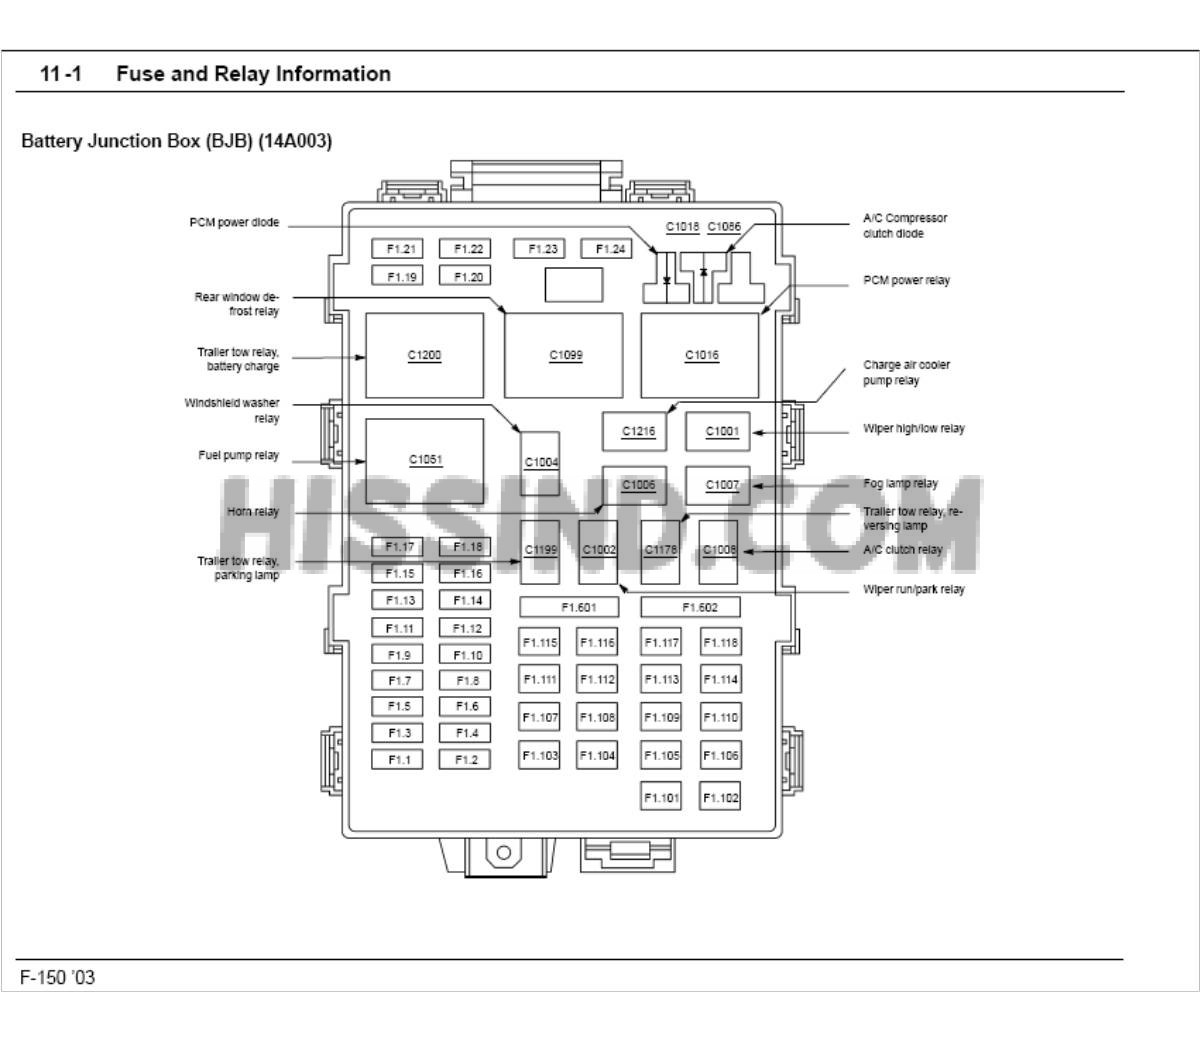 2000 ford f150 fuse box diagram engine bay rh diagrams hissind com 2000 f150 4.2 fuse box diagram 2000 ford f150 fuse panel diagram